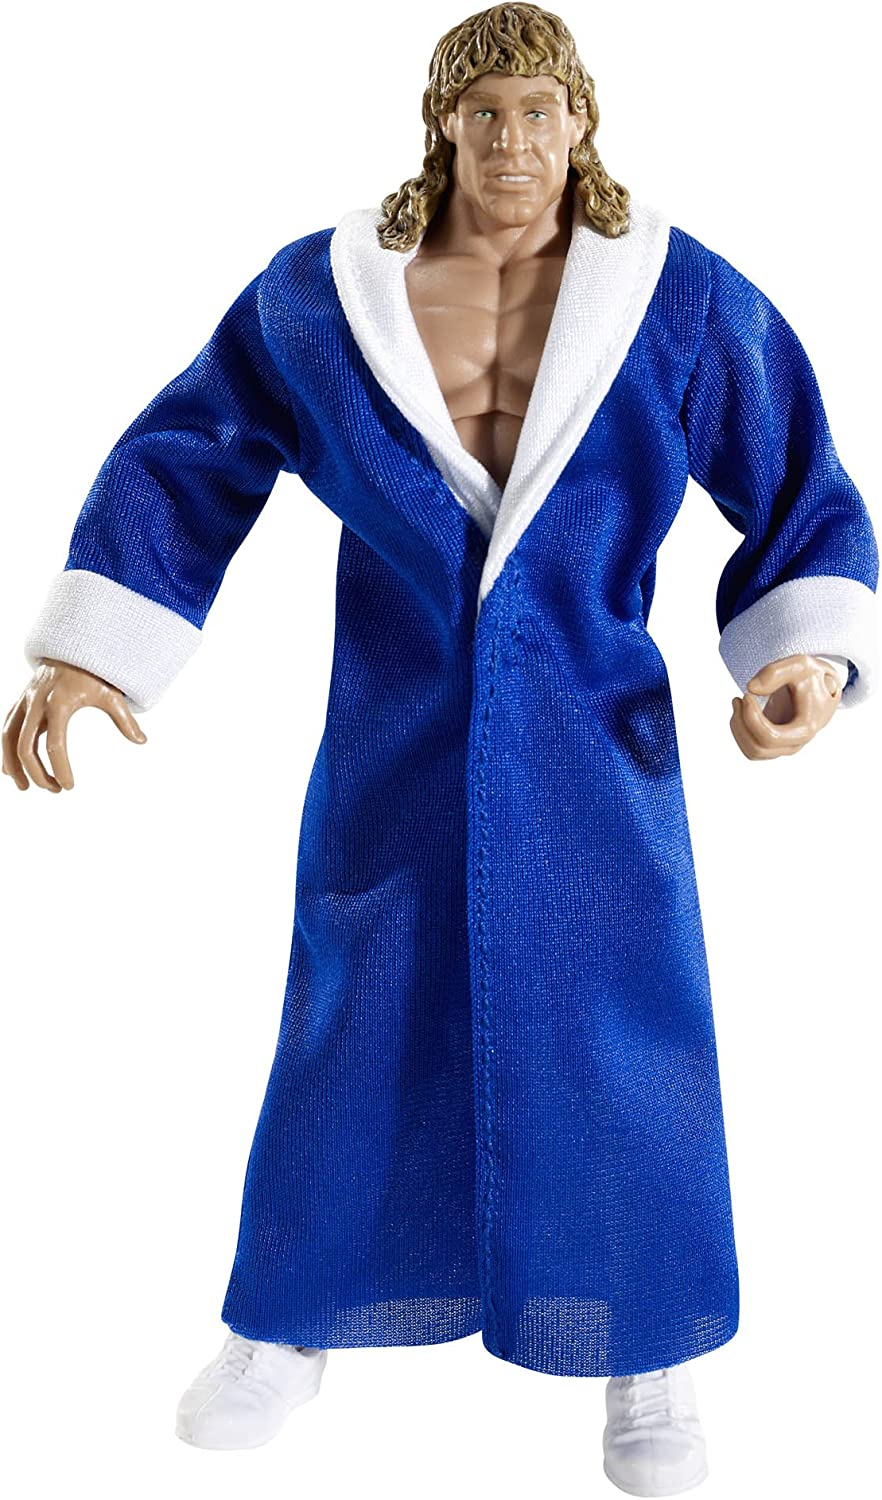 WWE Collector Legends Kerry Von Erich With Blue Robe Figure Series #6